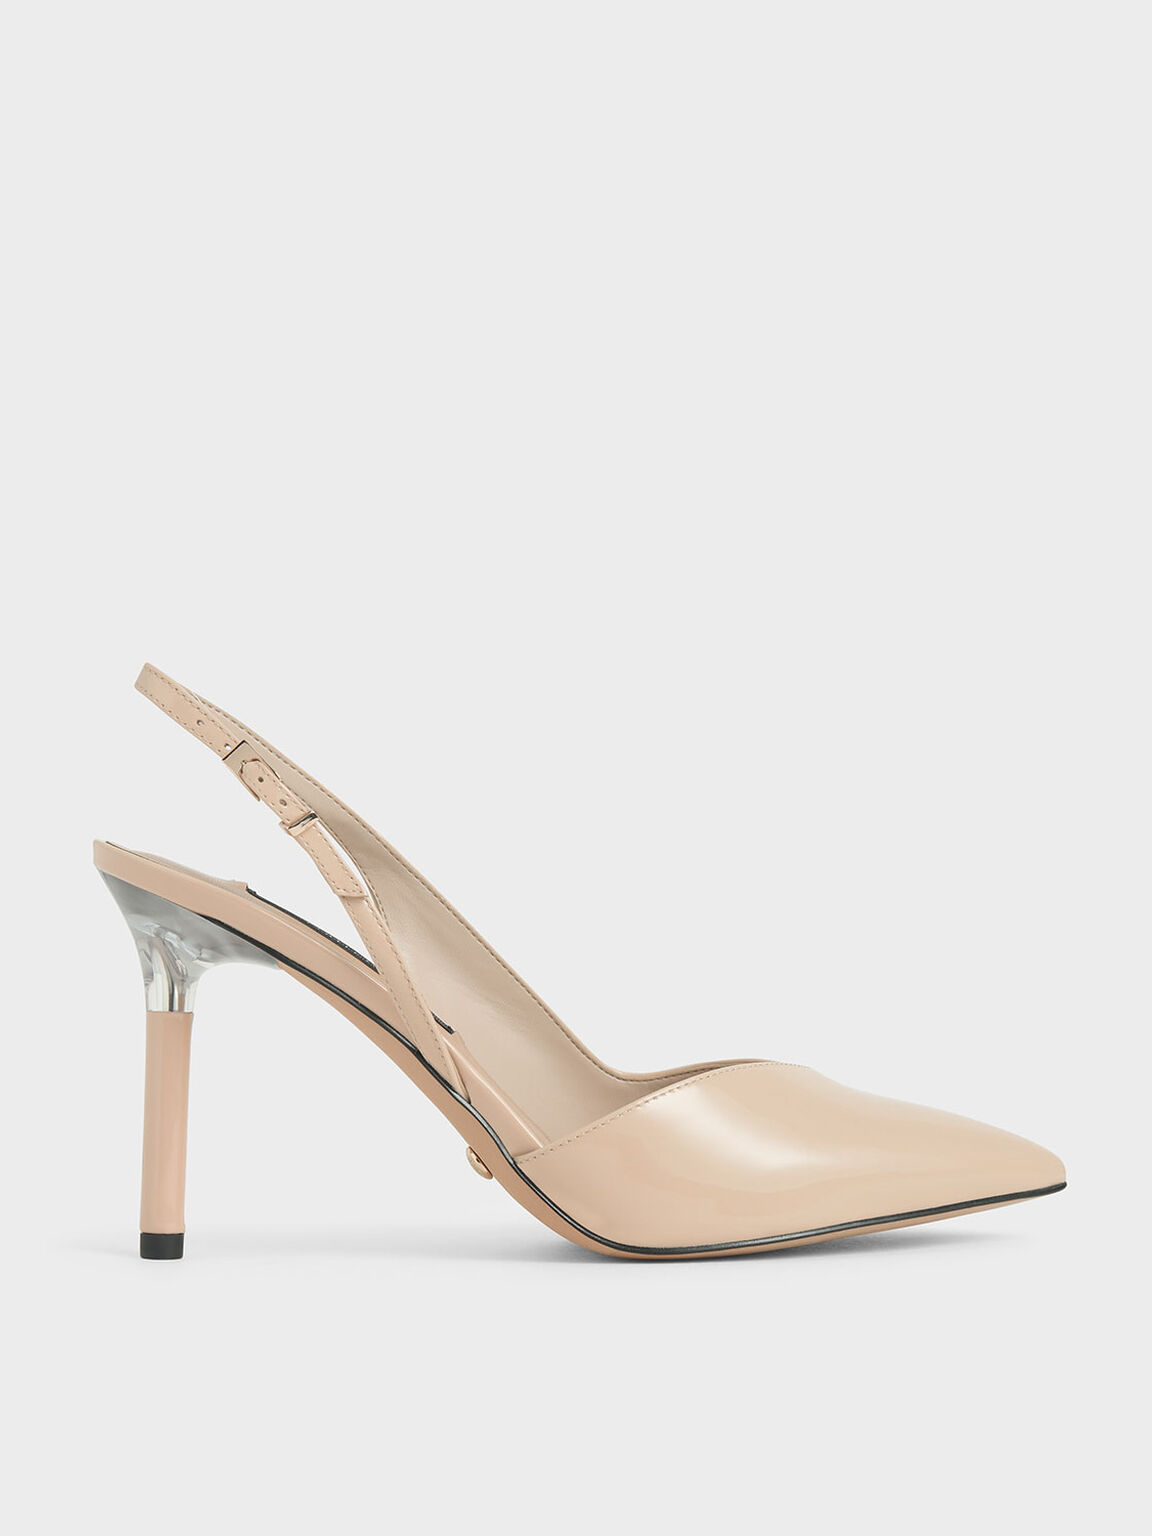 Patent Leather Half D'Orsay Slingback Pumps, Light Pink, hi-res